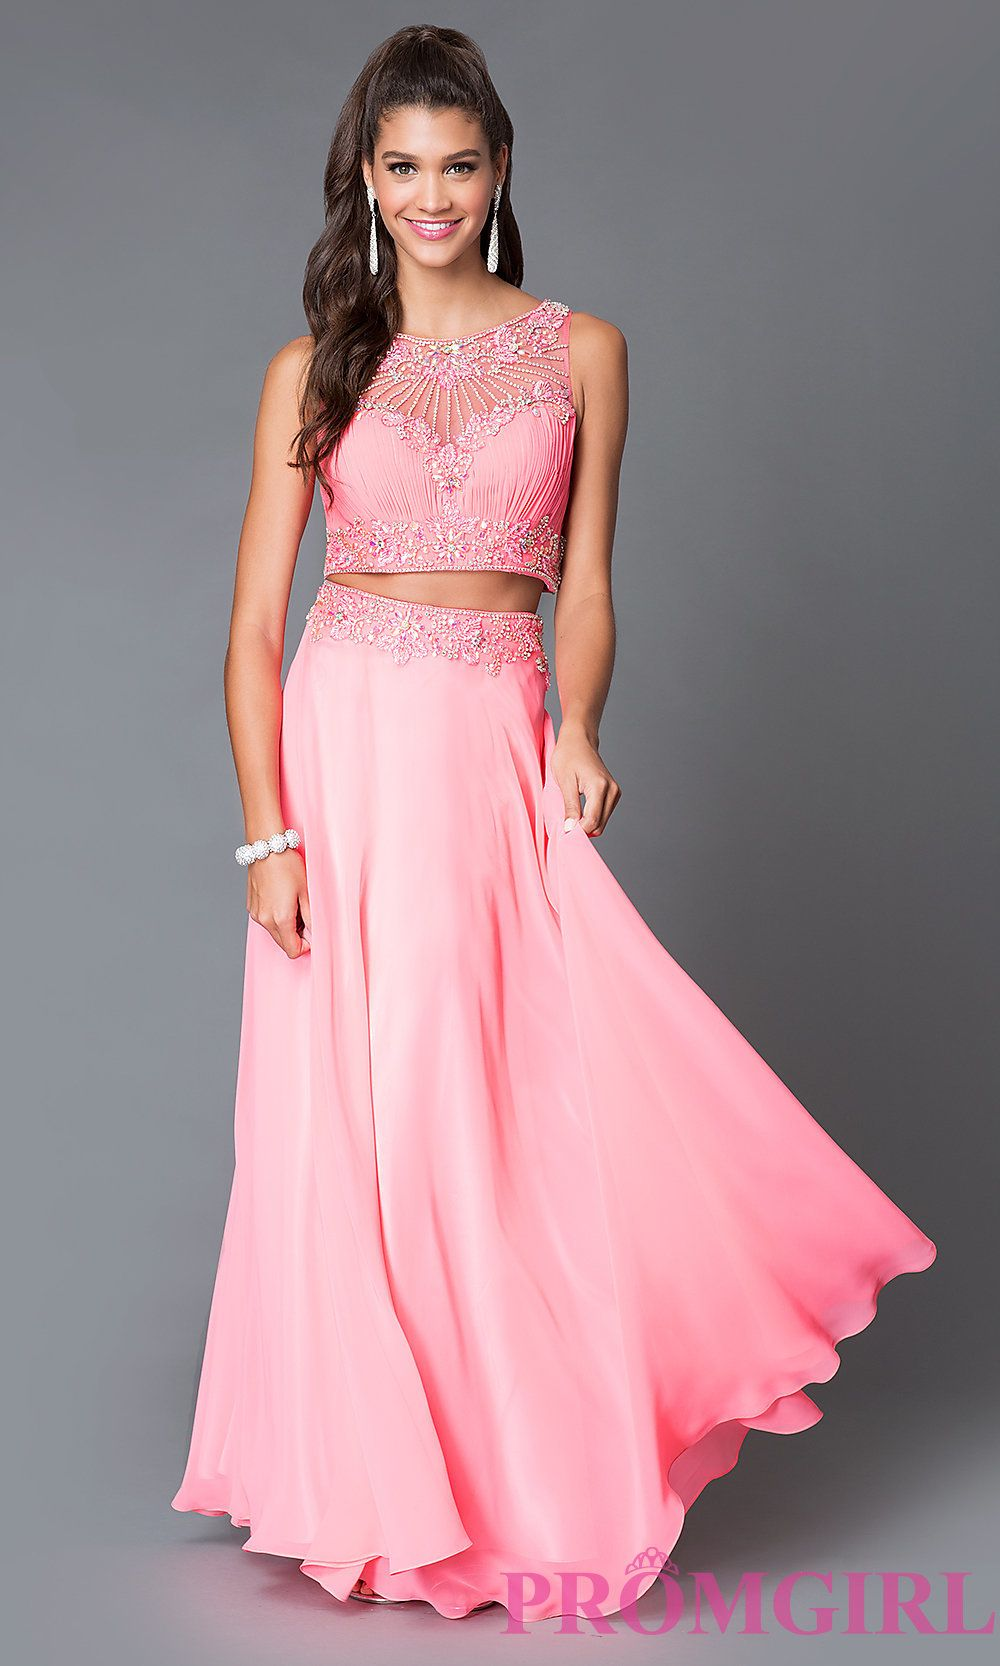 660105dcb4 Buy Two Piece 2082 Dave and Johnny Prom Dress at PromGirl Long Formal Gowns